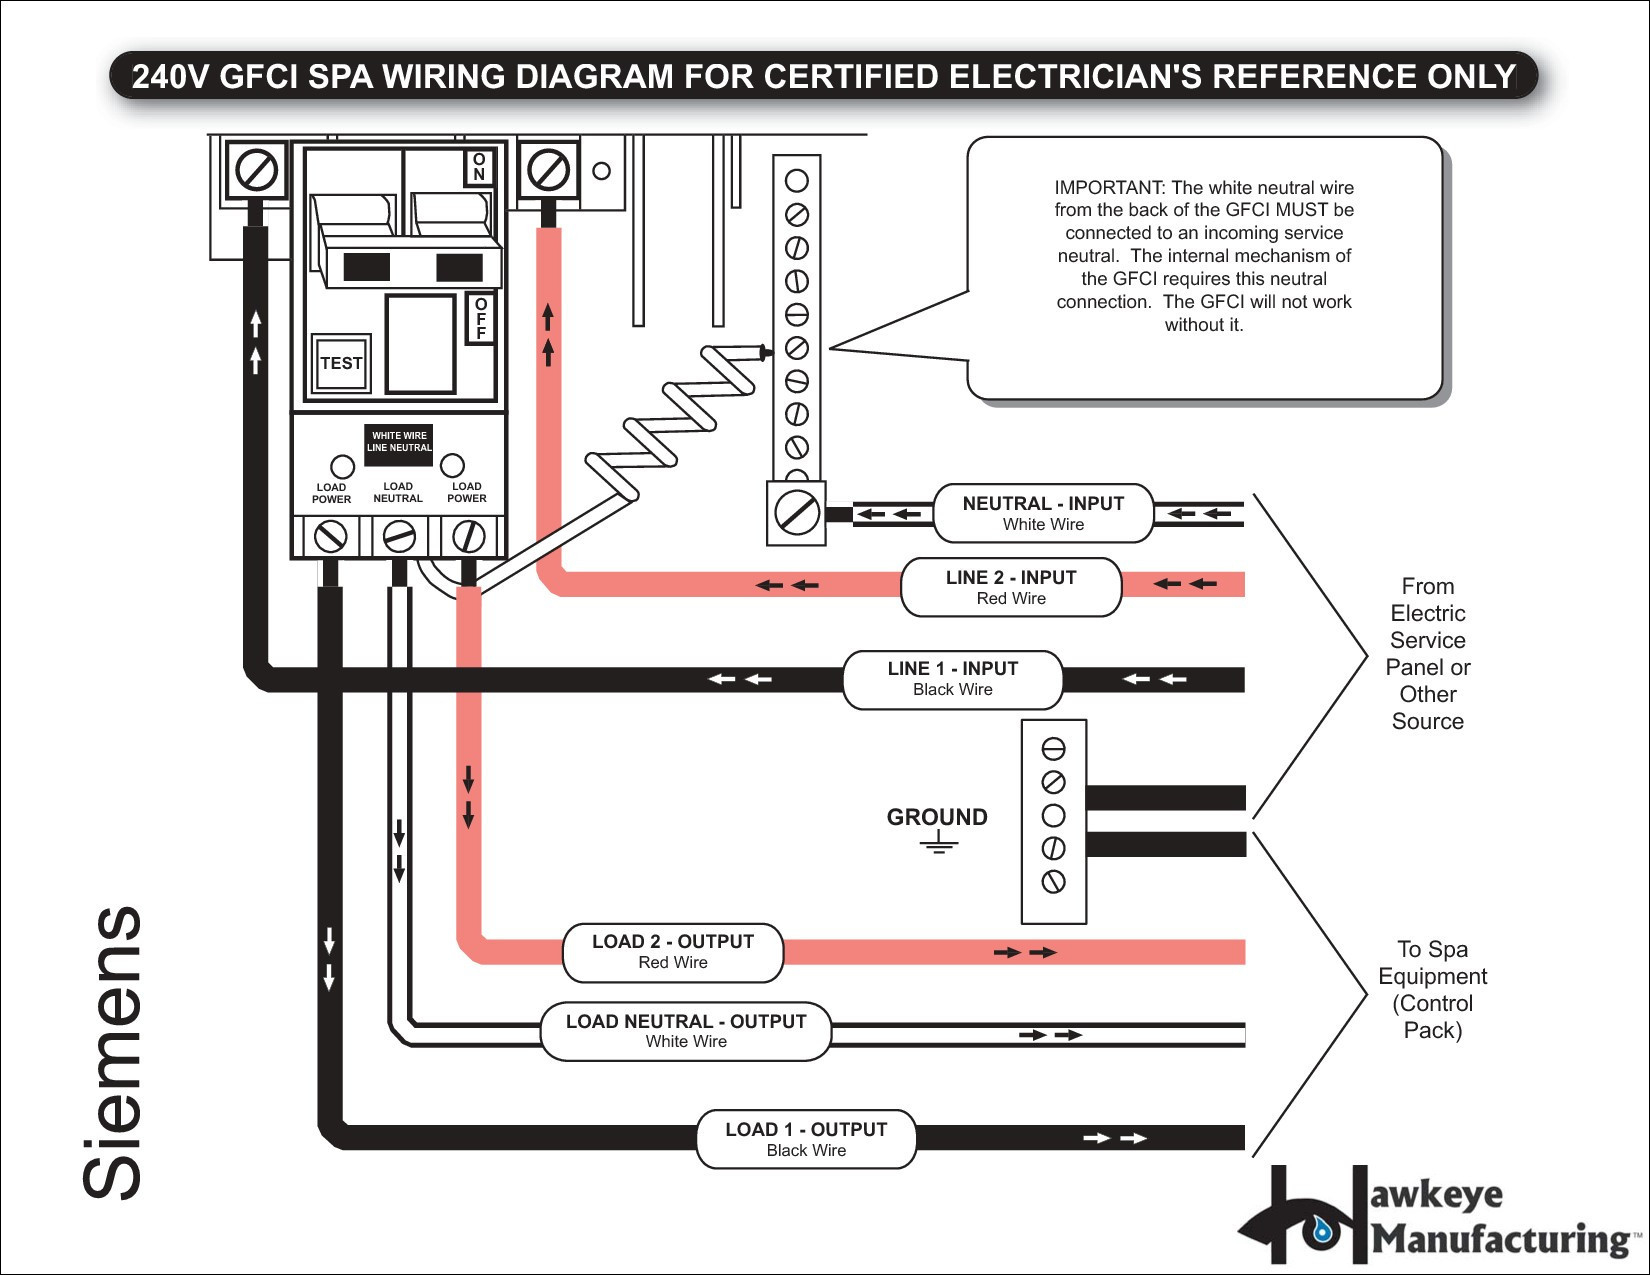 Circuit Breakers Gfci Wiring Diagram Square D Gfci Circuit Breakers